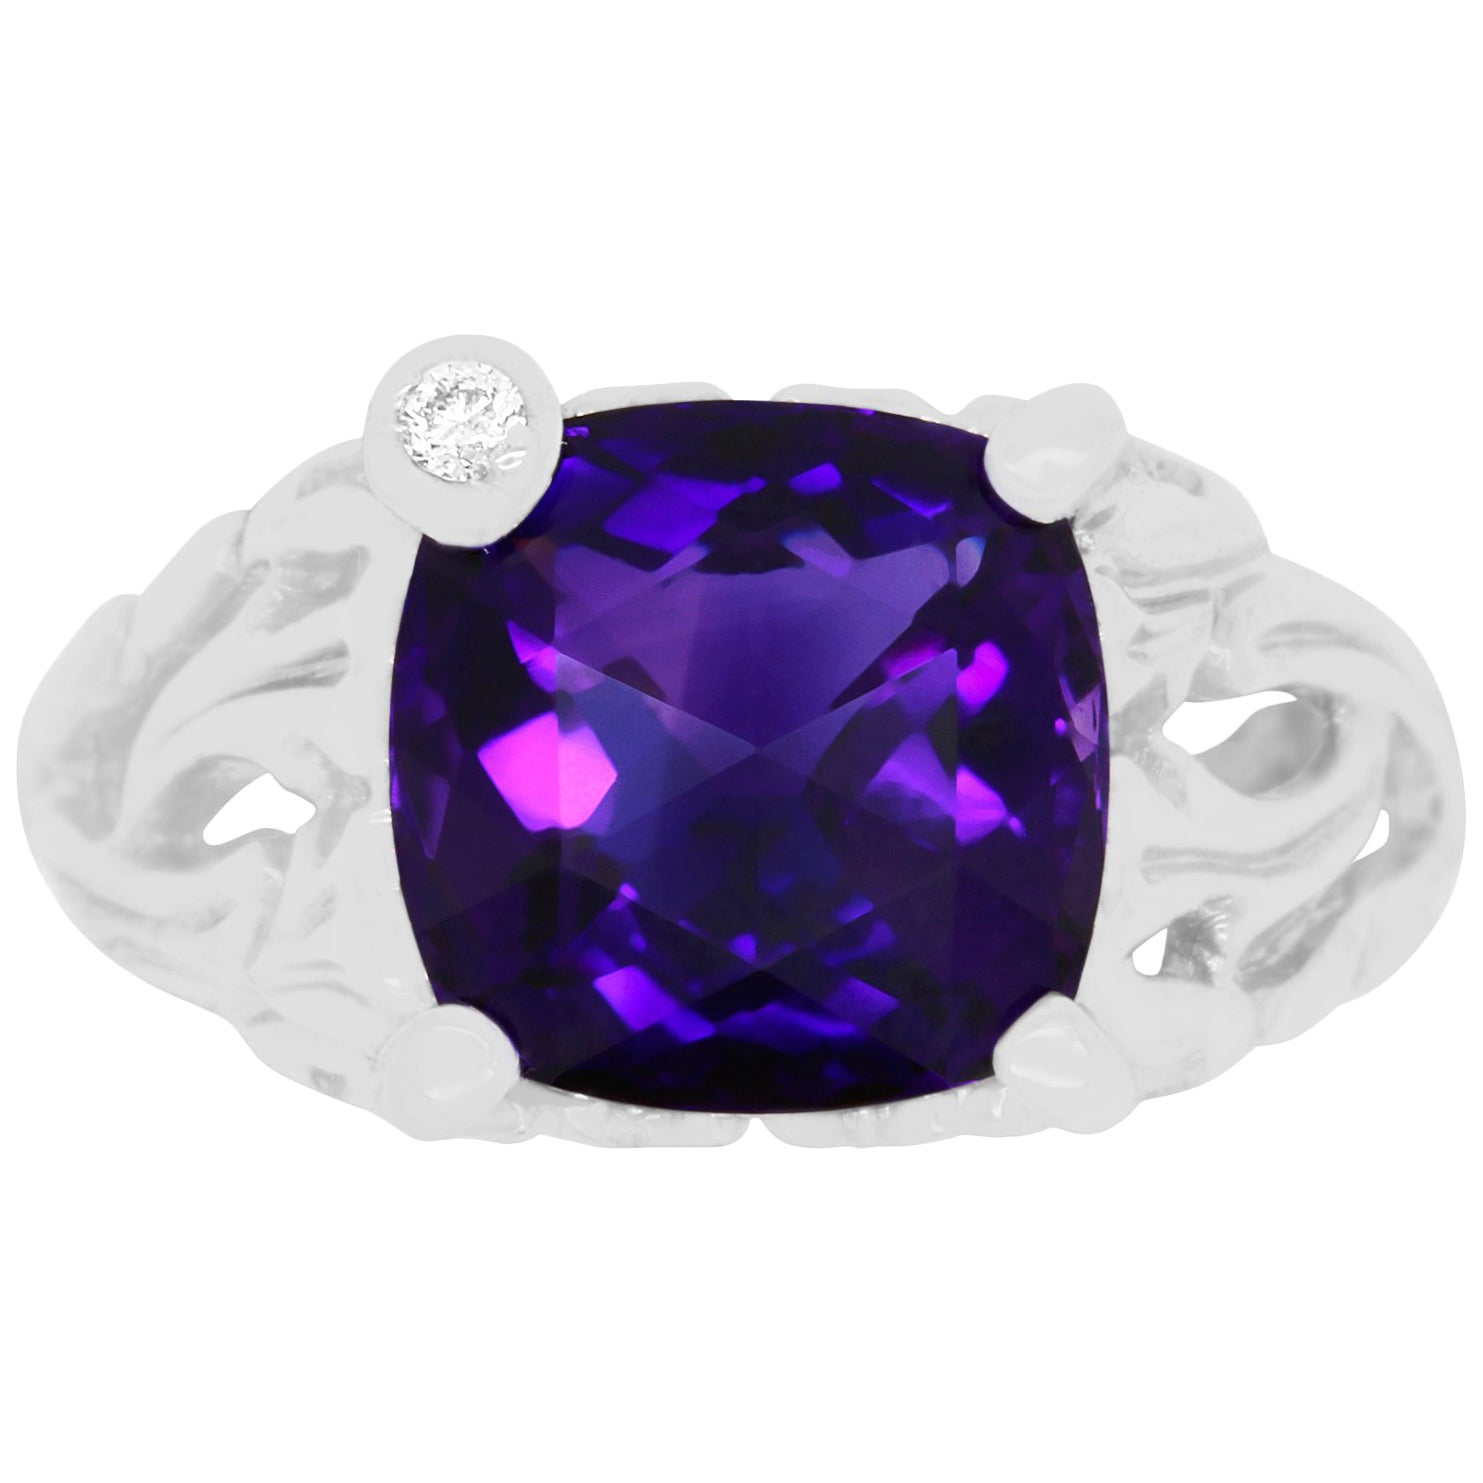 4.60 Carat Cushion Cut Amethyst and Round Diamond Cocktail Ring 14K White Gold